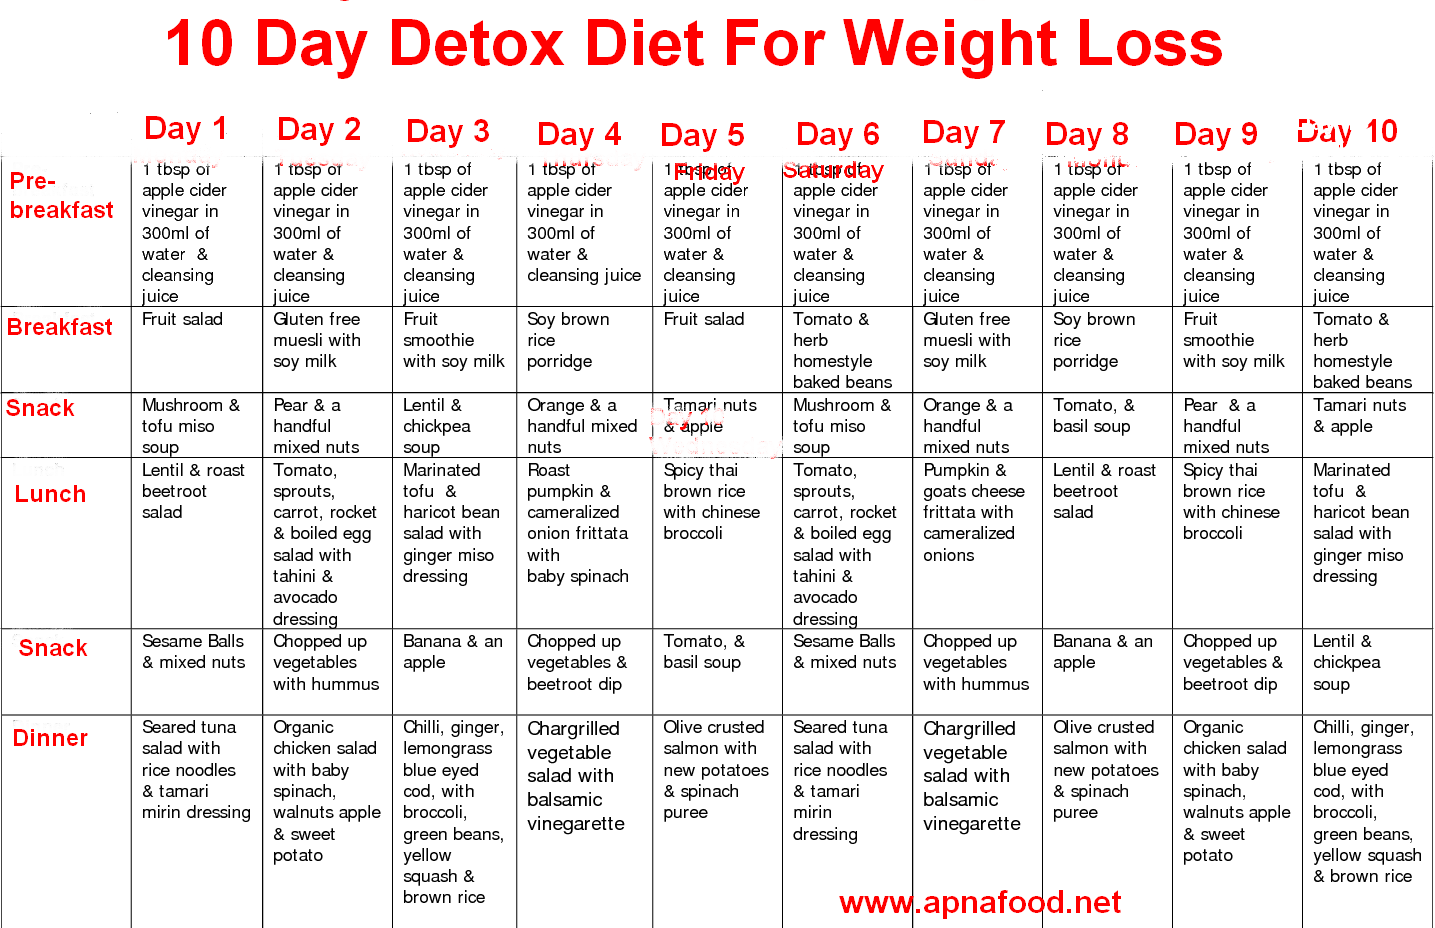 10 day cleansing diet